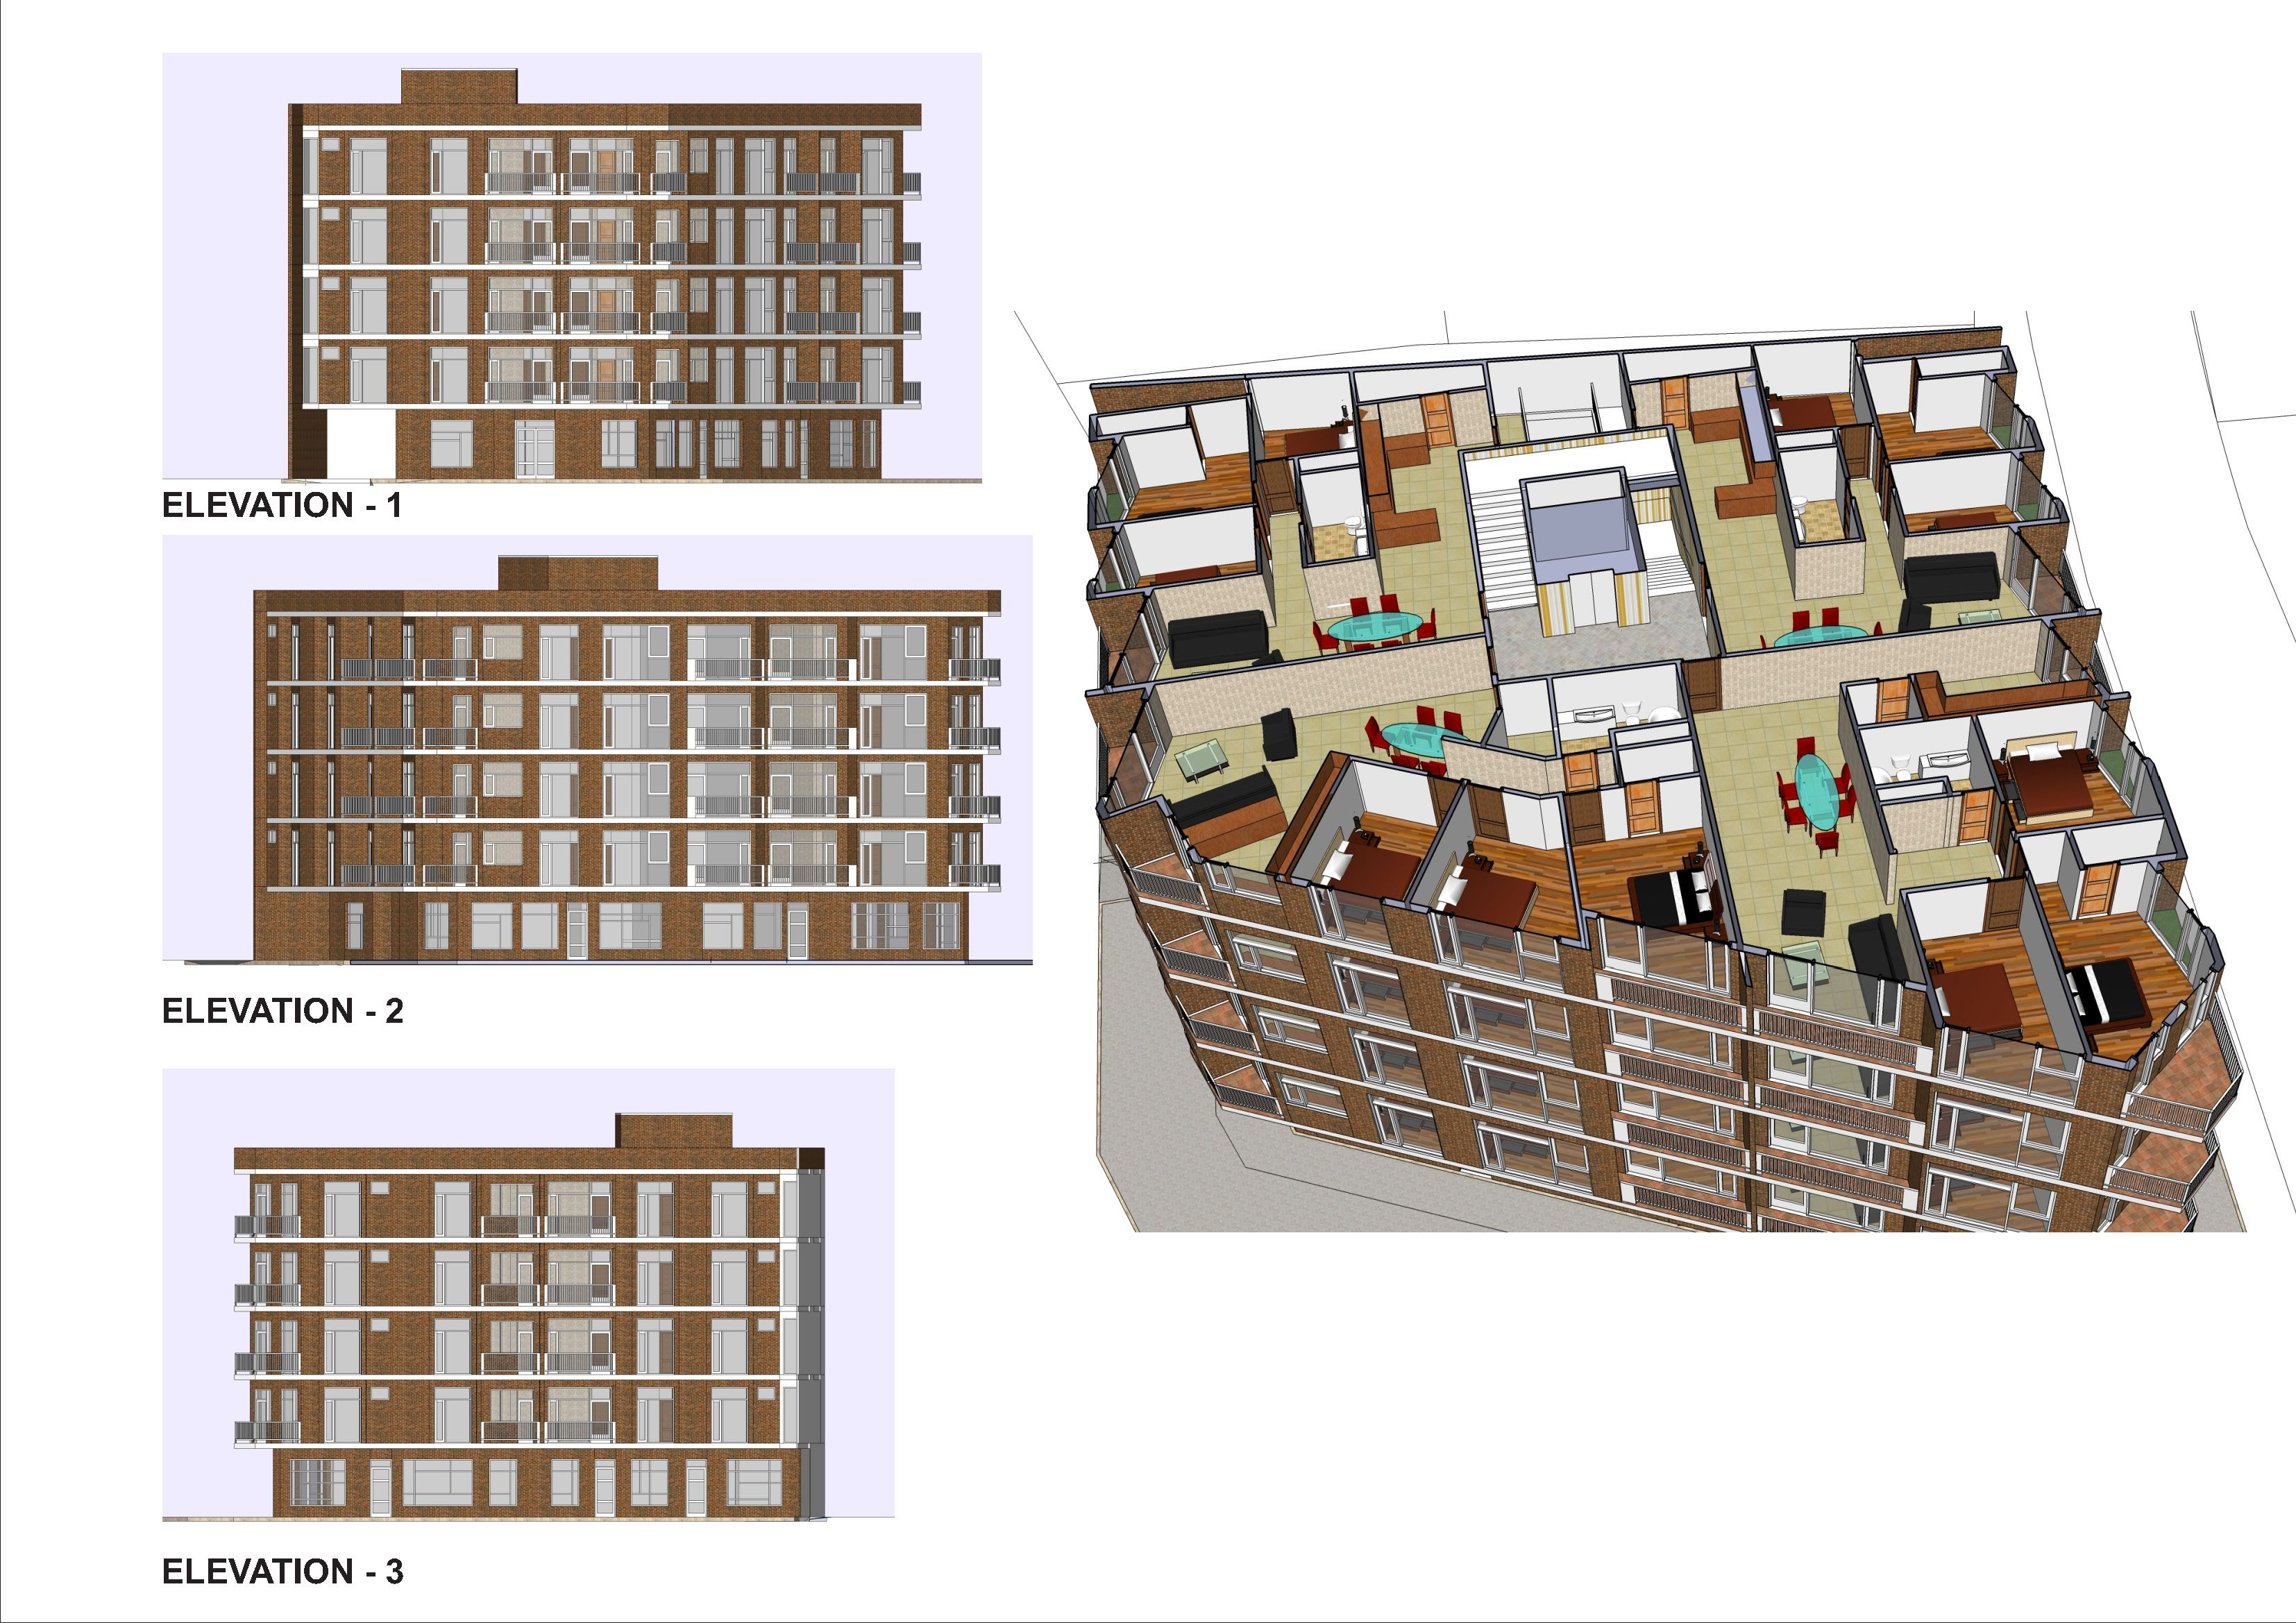 Apartment building plans location aksaray turkey new Apartment building construction plans